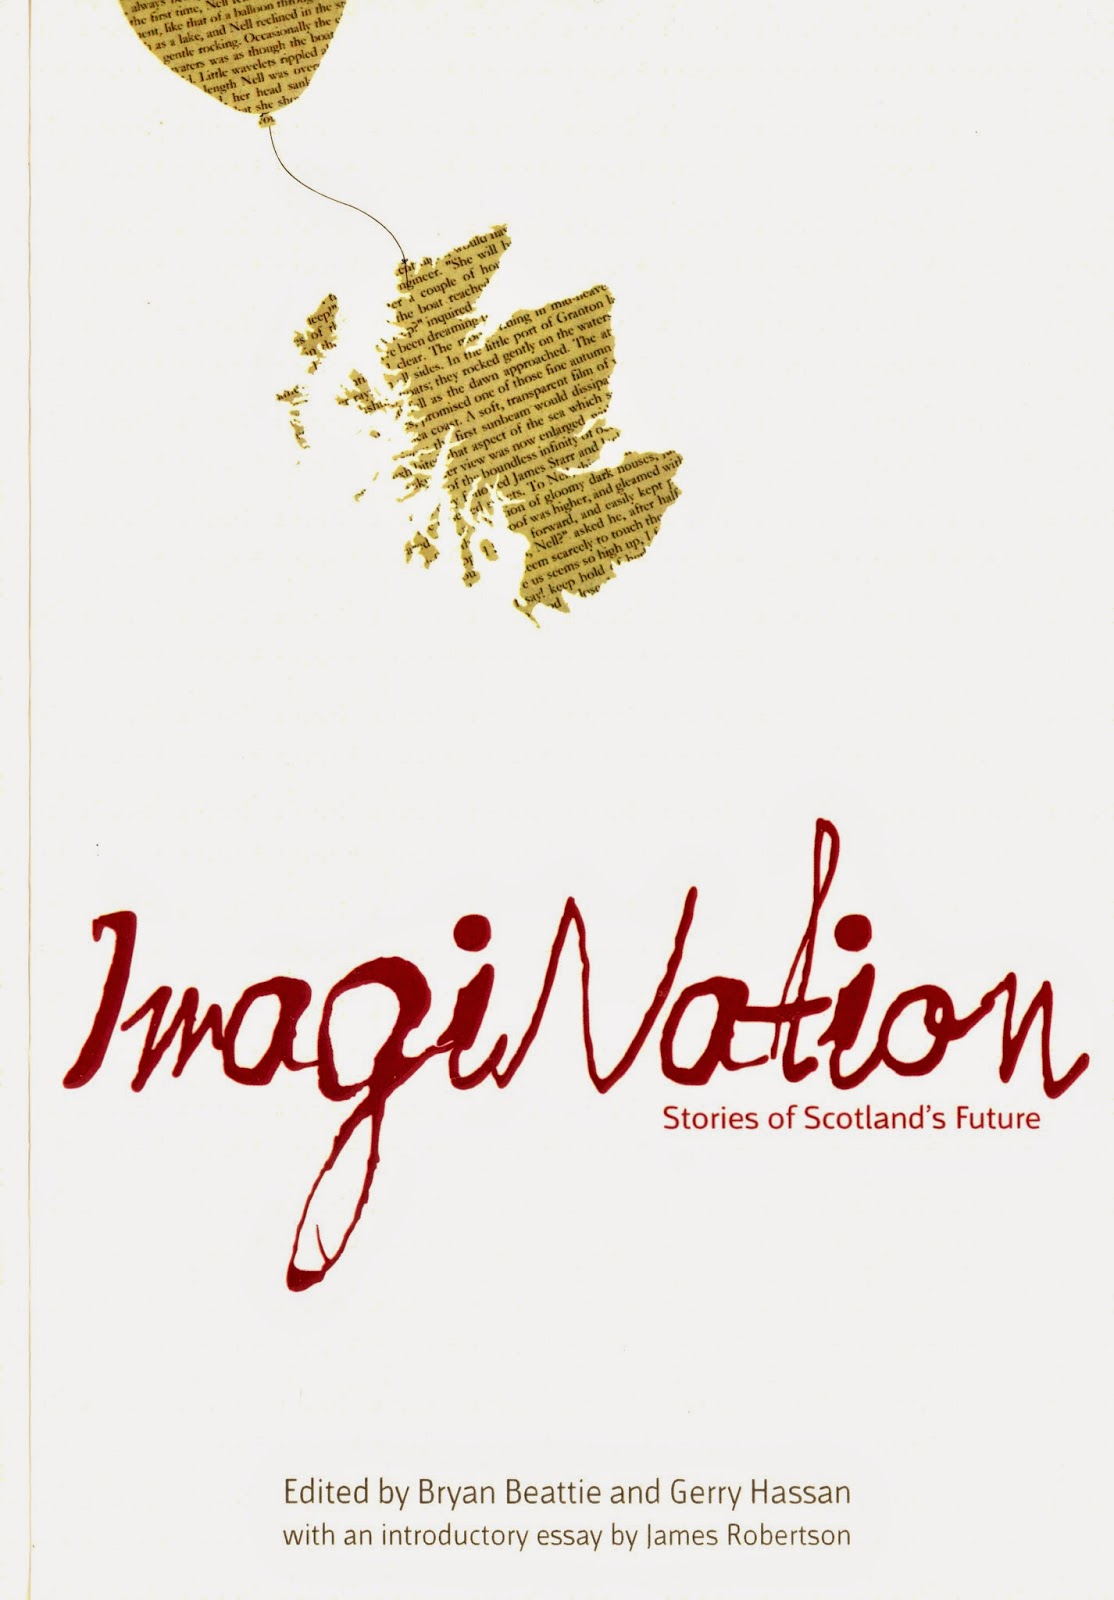 ImagiNation: Stories of Scotland's Future Bryan Beattie and Gerry Hassan